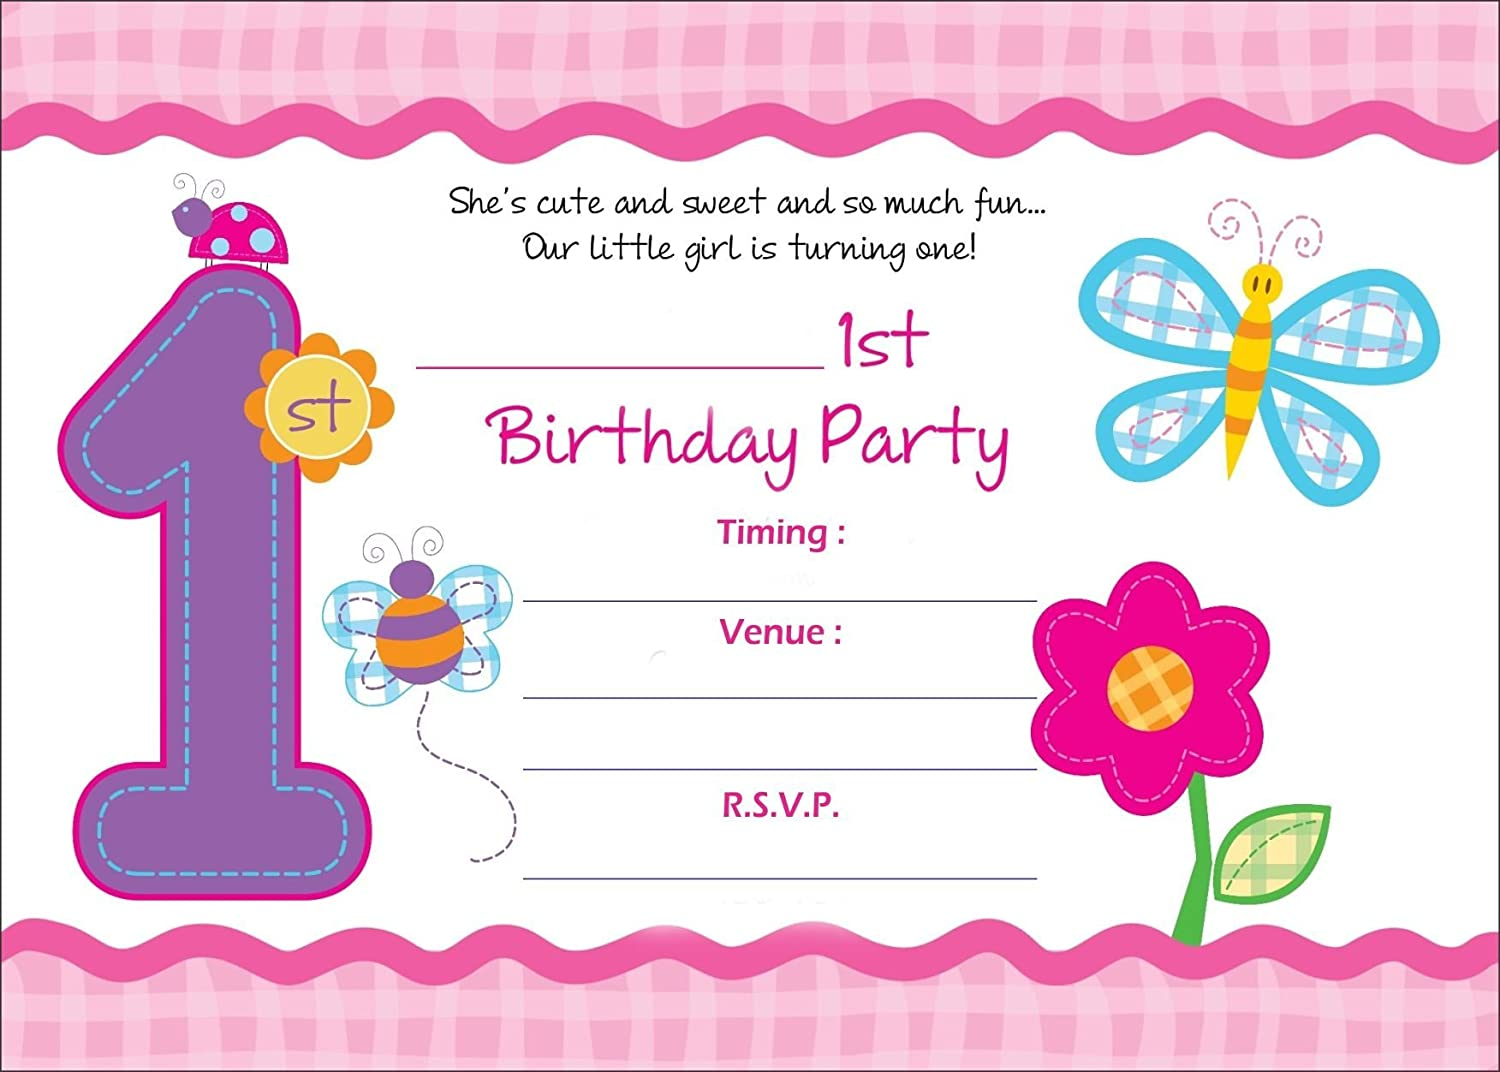 Askprints Birthday Metallic Card Invitations with Envelopes - Kids Birthday  Party Invitations for Girls (25 Count) BPC-017: Amazon.in: Toys & Games